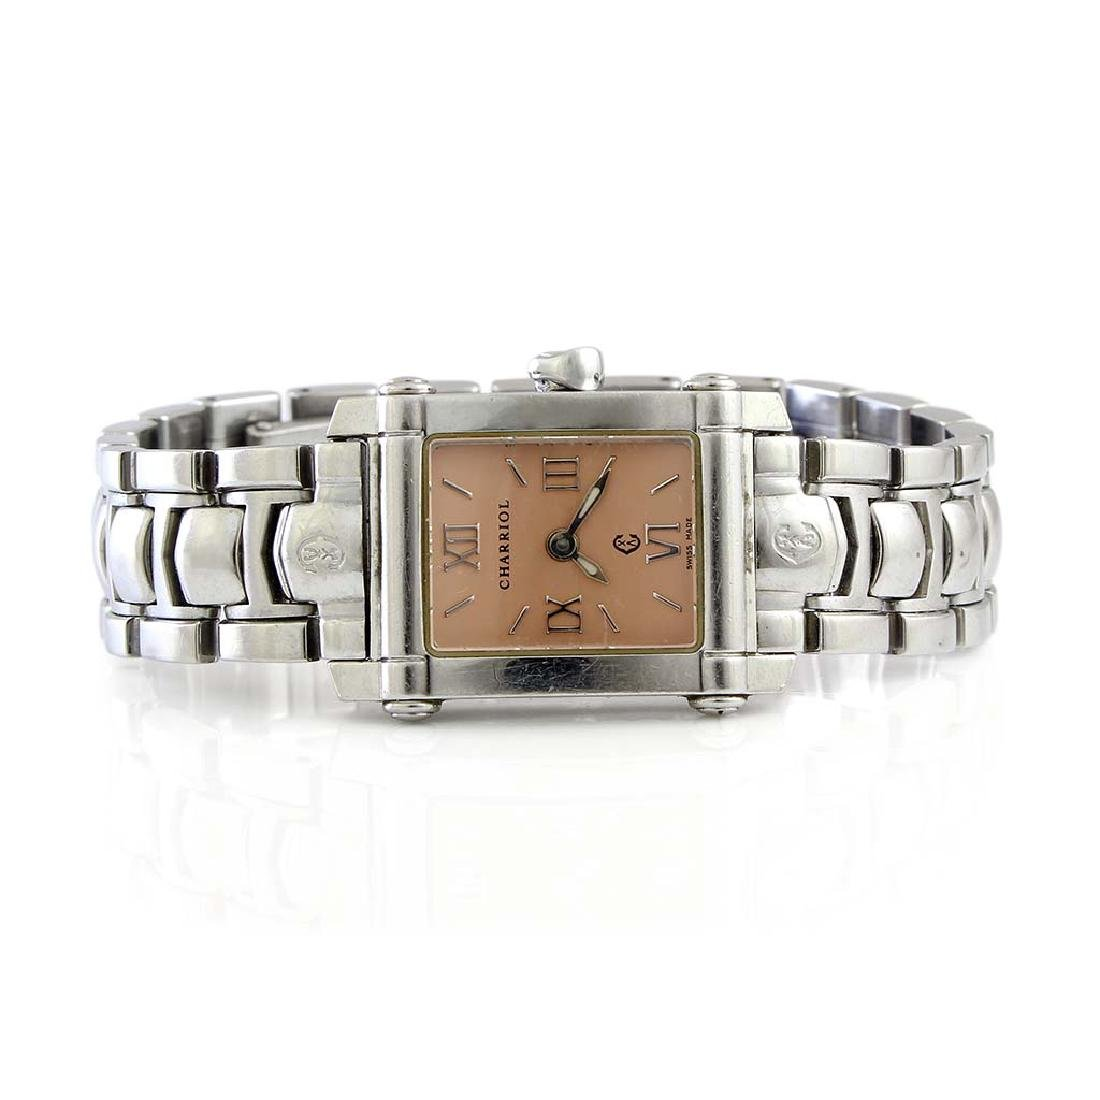 Philippe Charriol Stainless Steel Watch